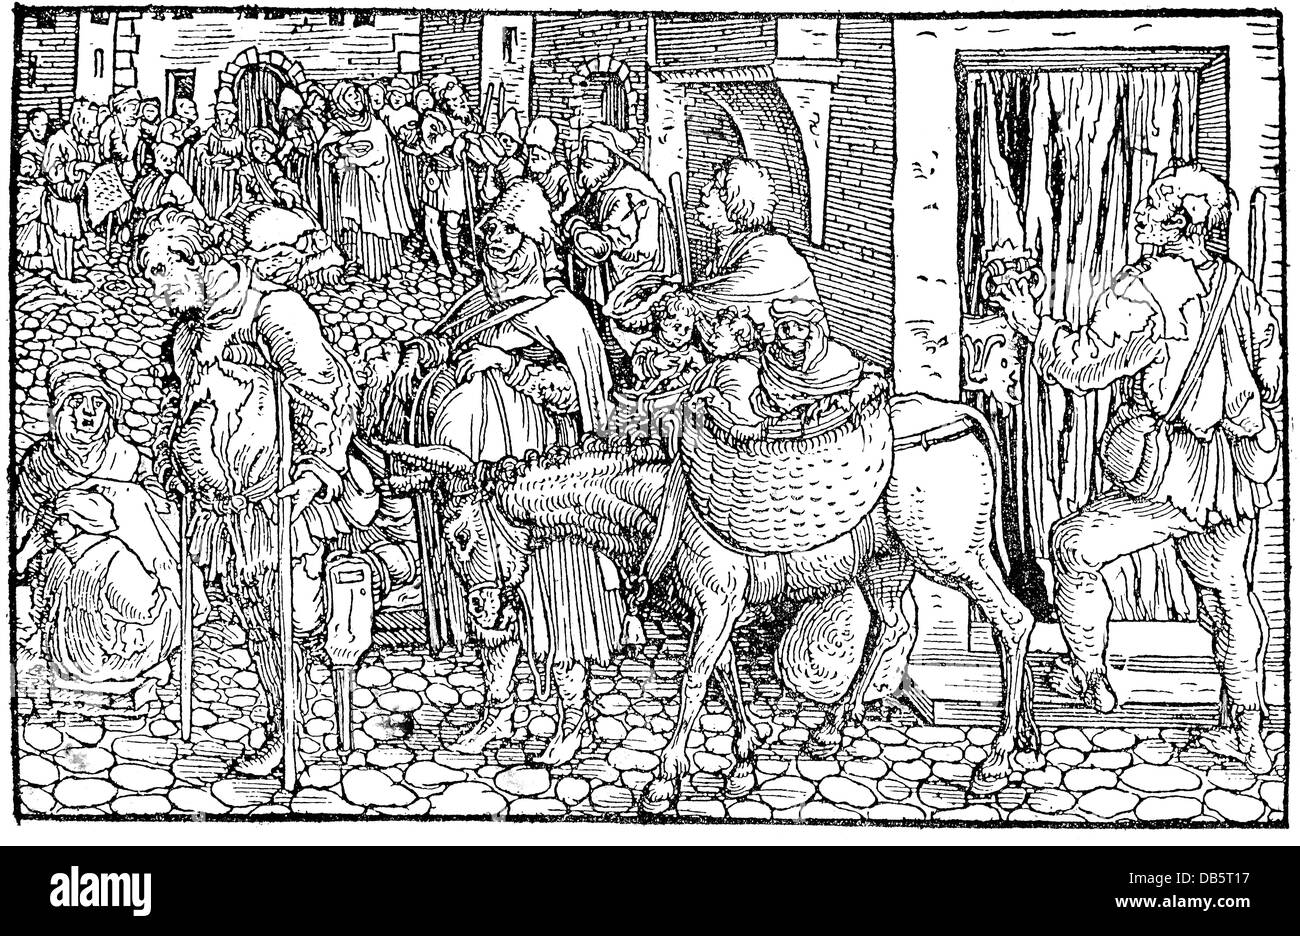 people, hardship / adversity, Middle Ages, beggars, beggar family, woodcut, by the Master of the Trostspiegel (Mirror - Stock Image